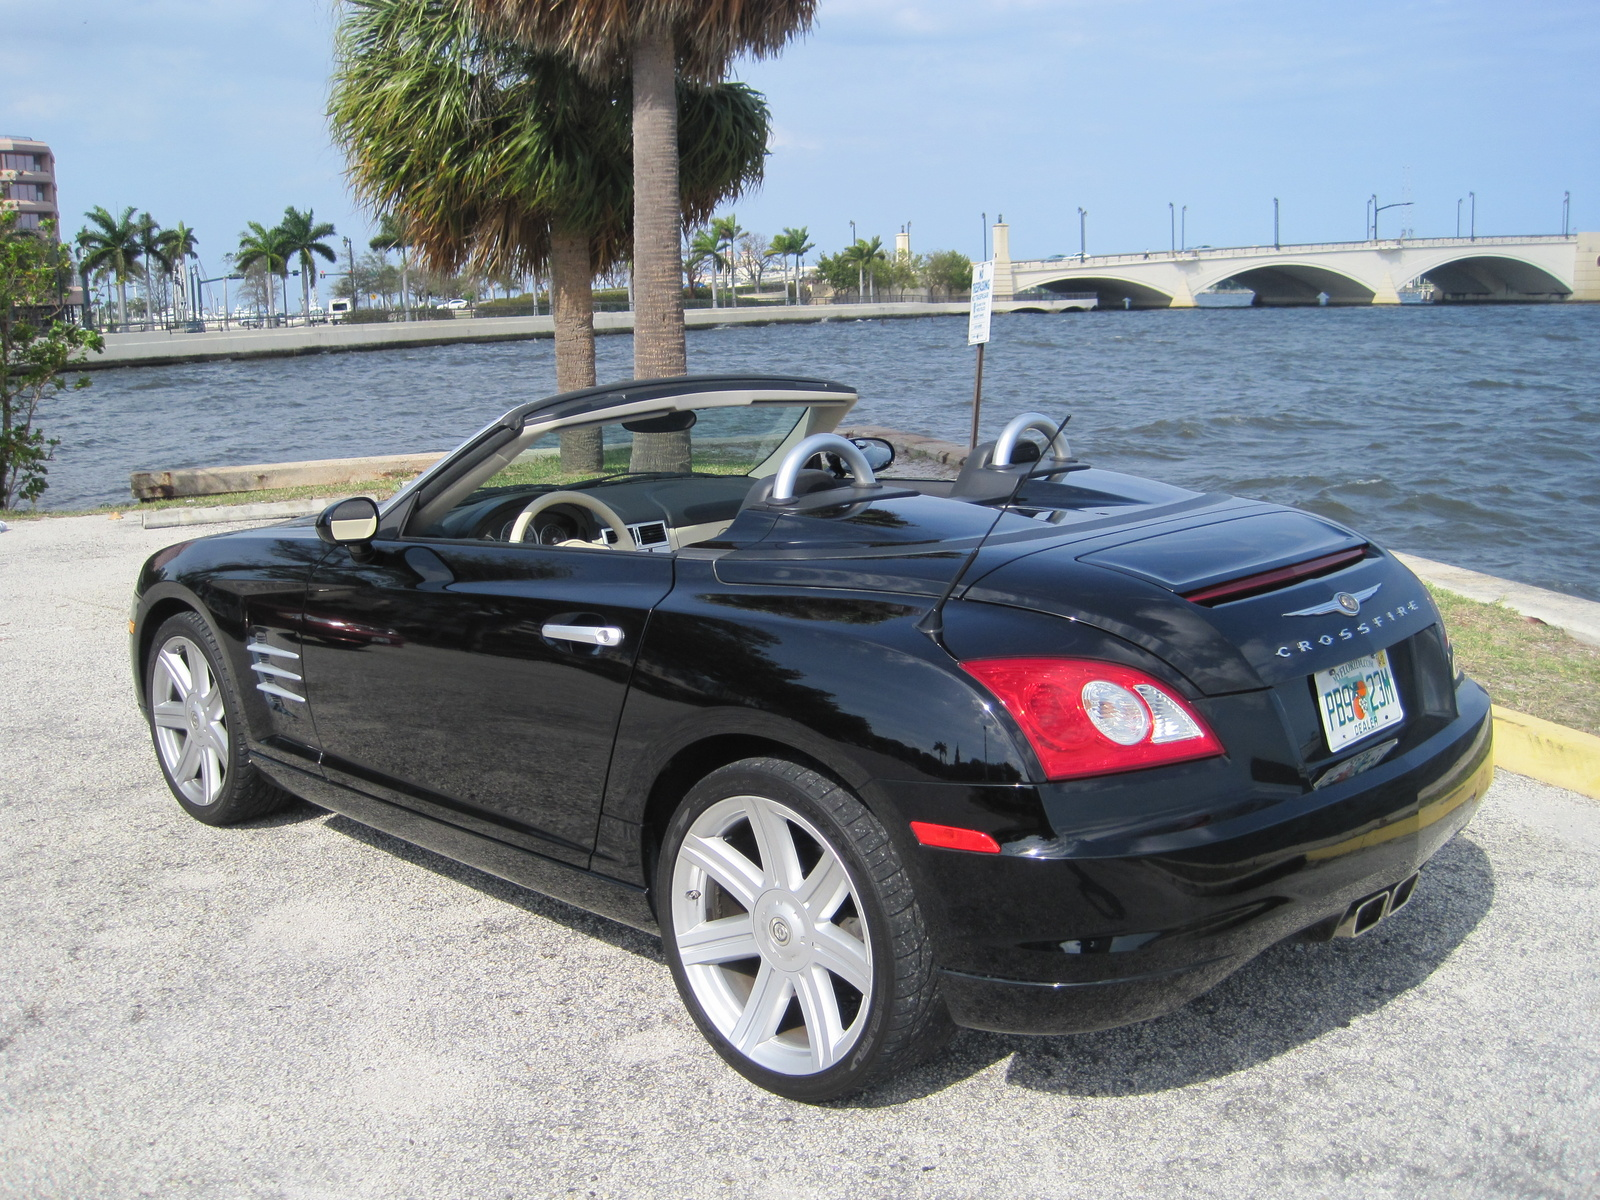 Picture of 2008 Chrysler Crossfire Limited Roadster, exterior